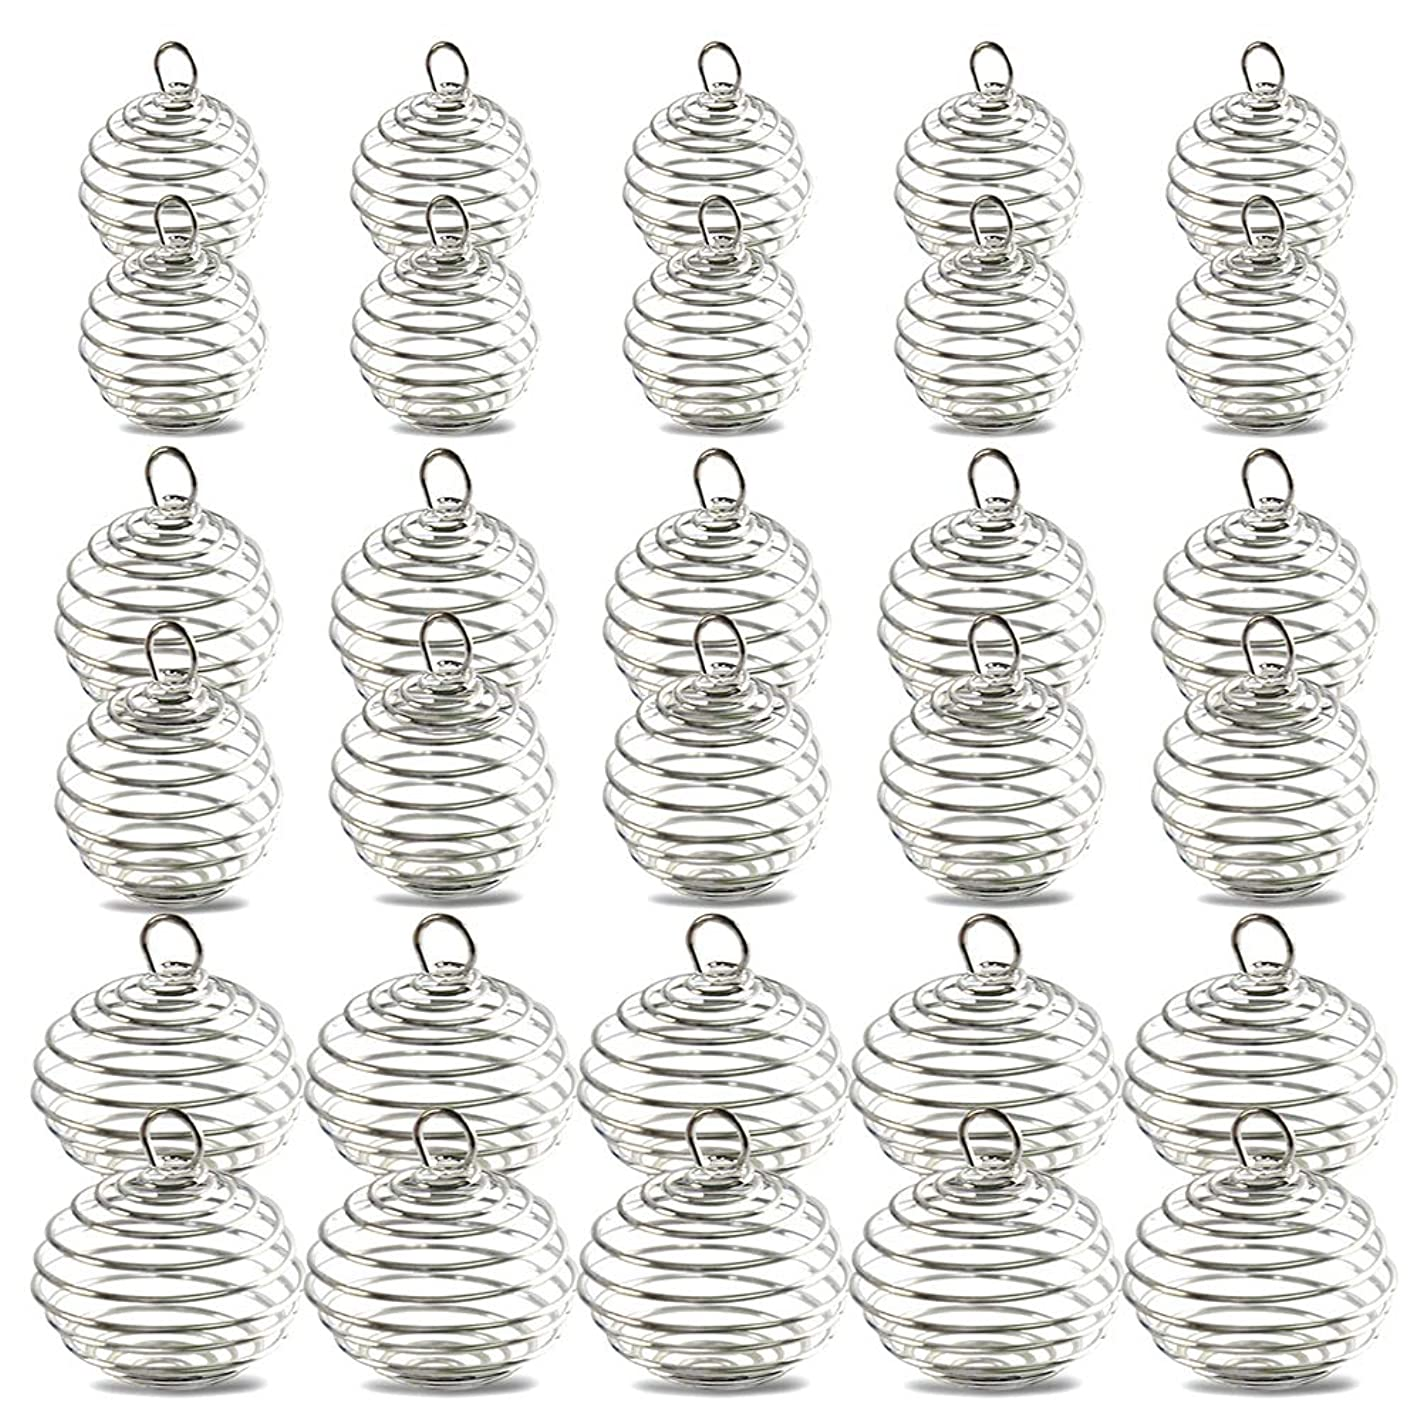 30pc Bead Cages, YGDZ 3 Sizes Spiral Silver Plated Bead Cages Pendants for Jewelry Making (15mm, 25mm, 30mm)